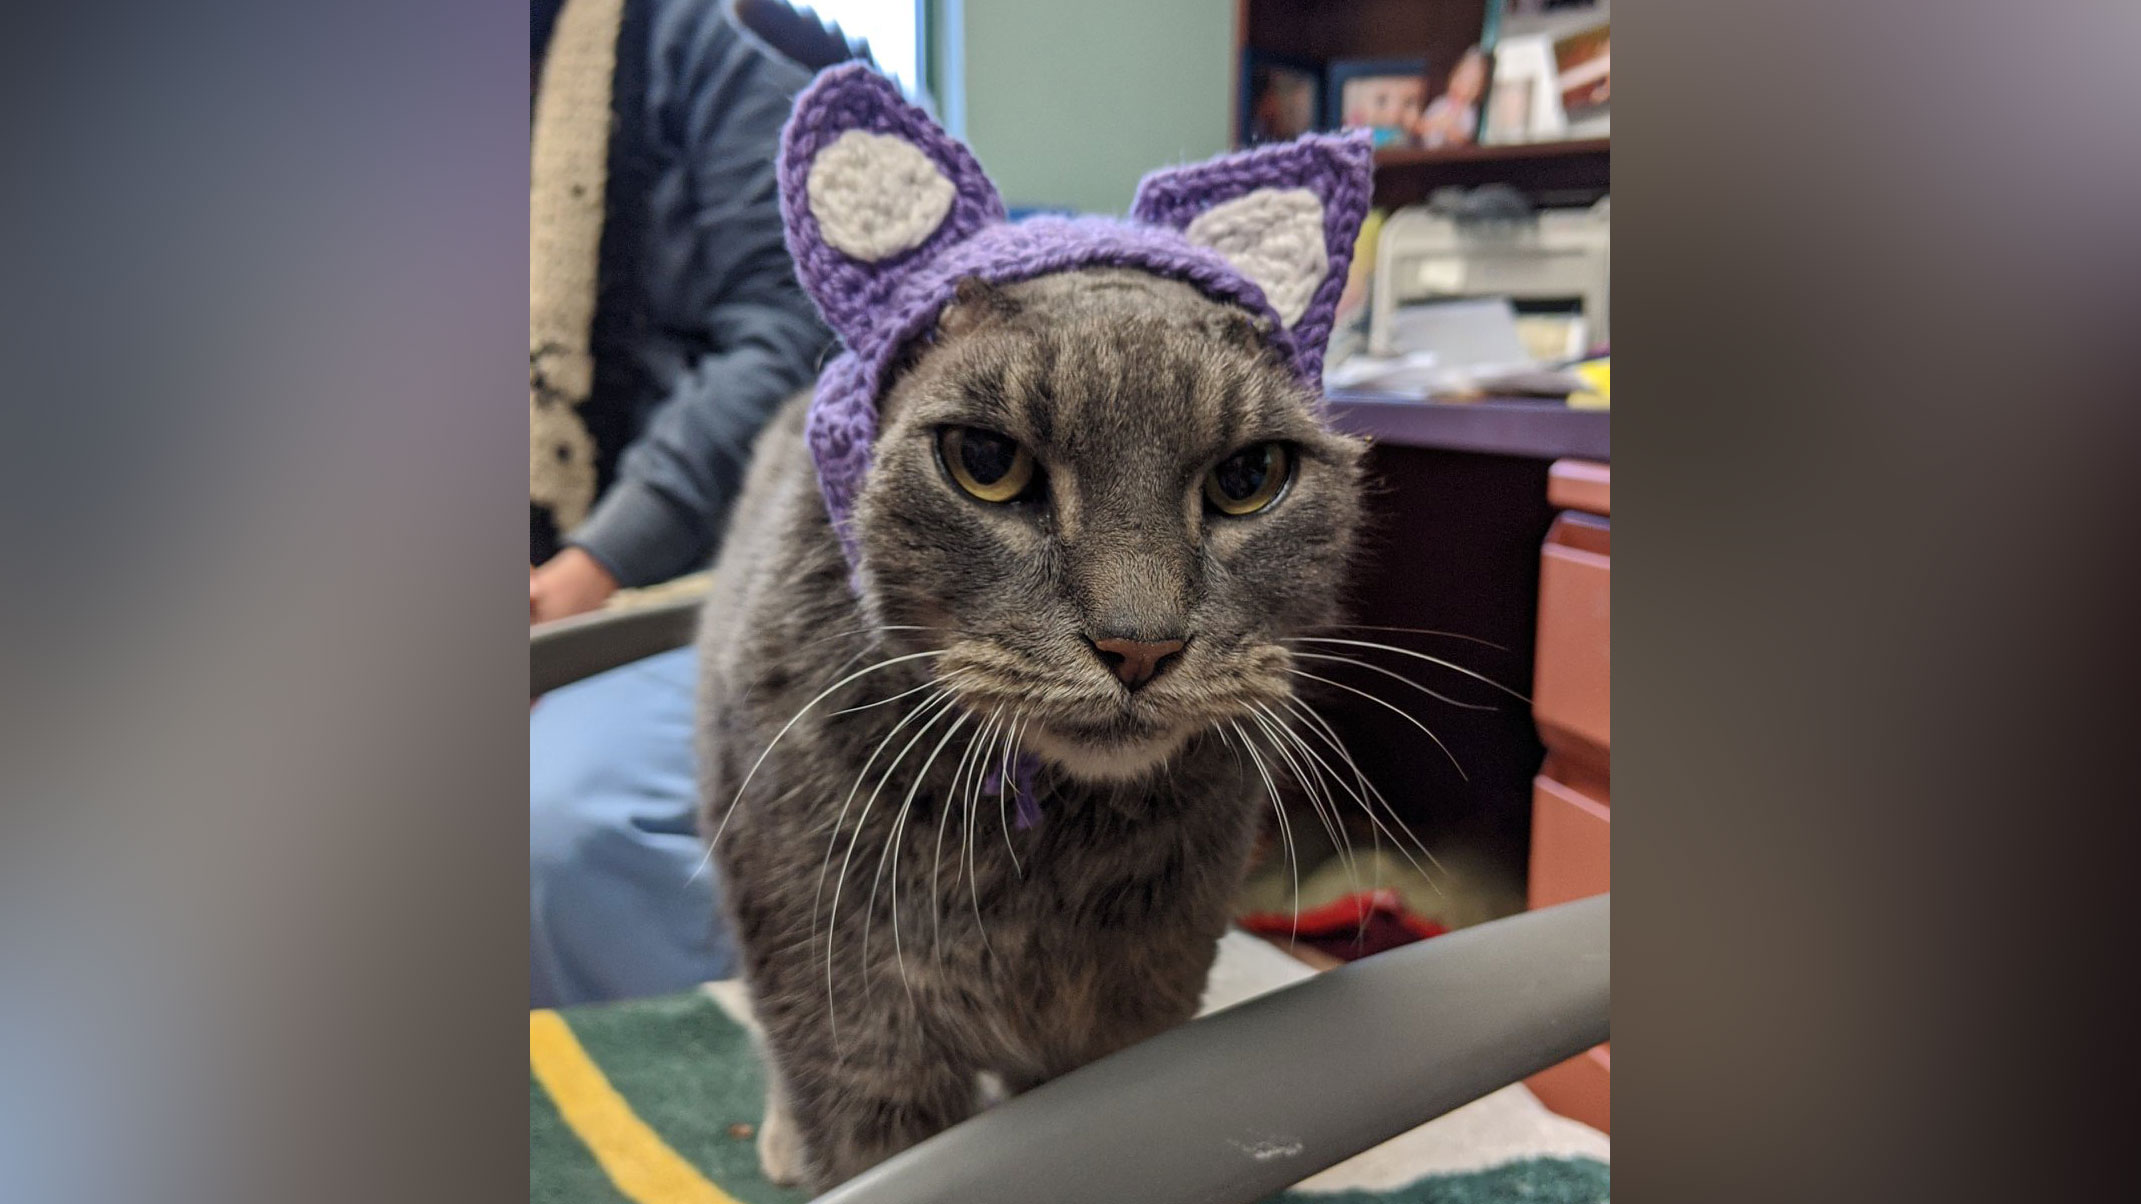 A stray cat without ears has a new set of purple ones, thanks to an animal lover who crochets